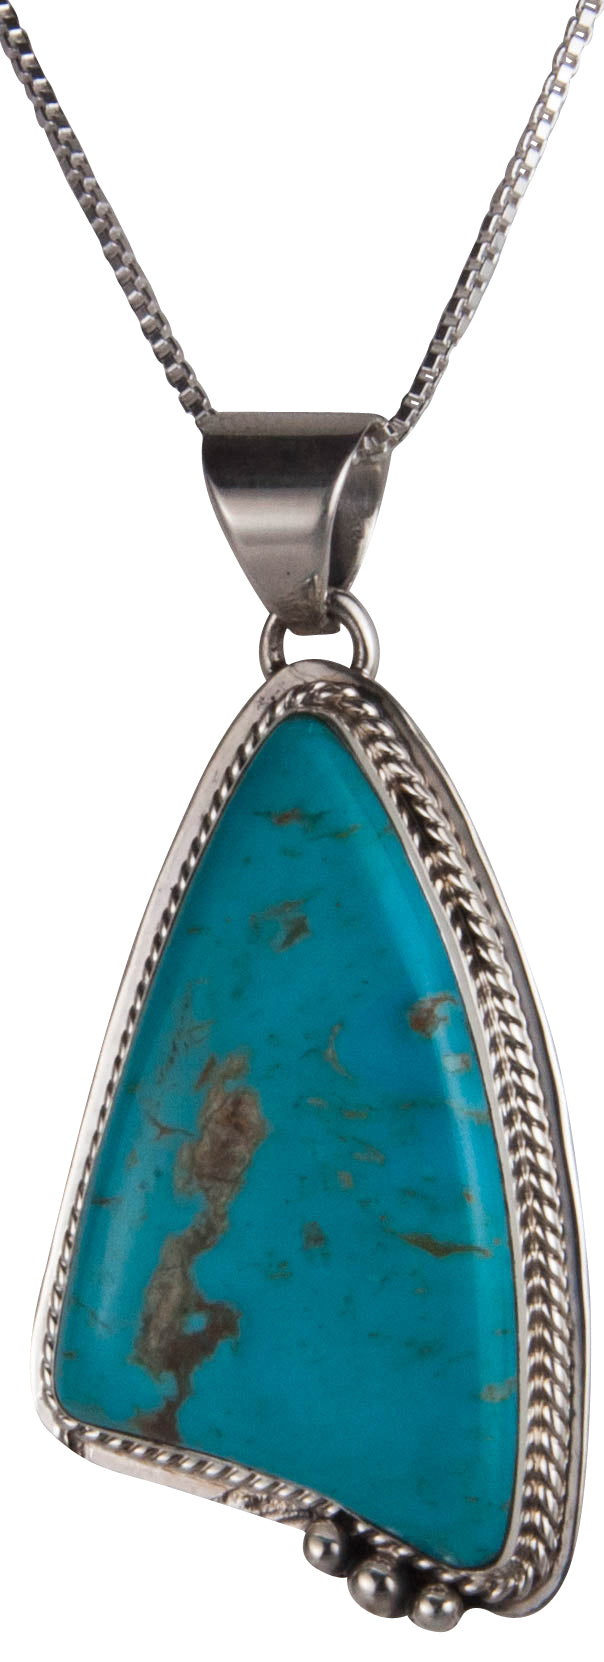 Navajo Native American Turquoise Mountain Mine Pendant Necklace SKU229554